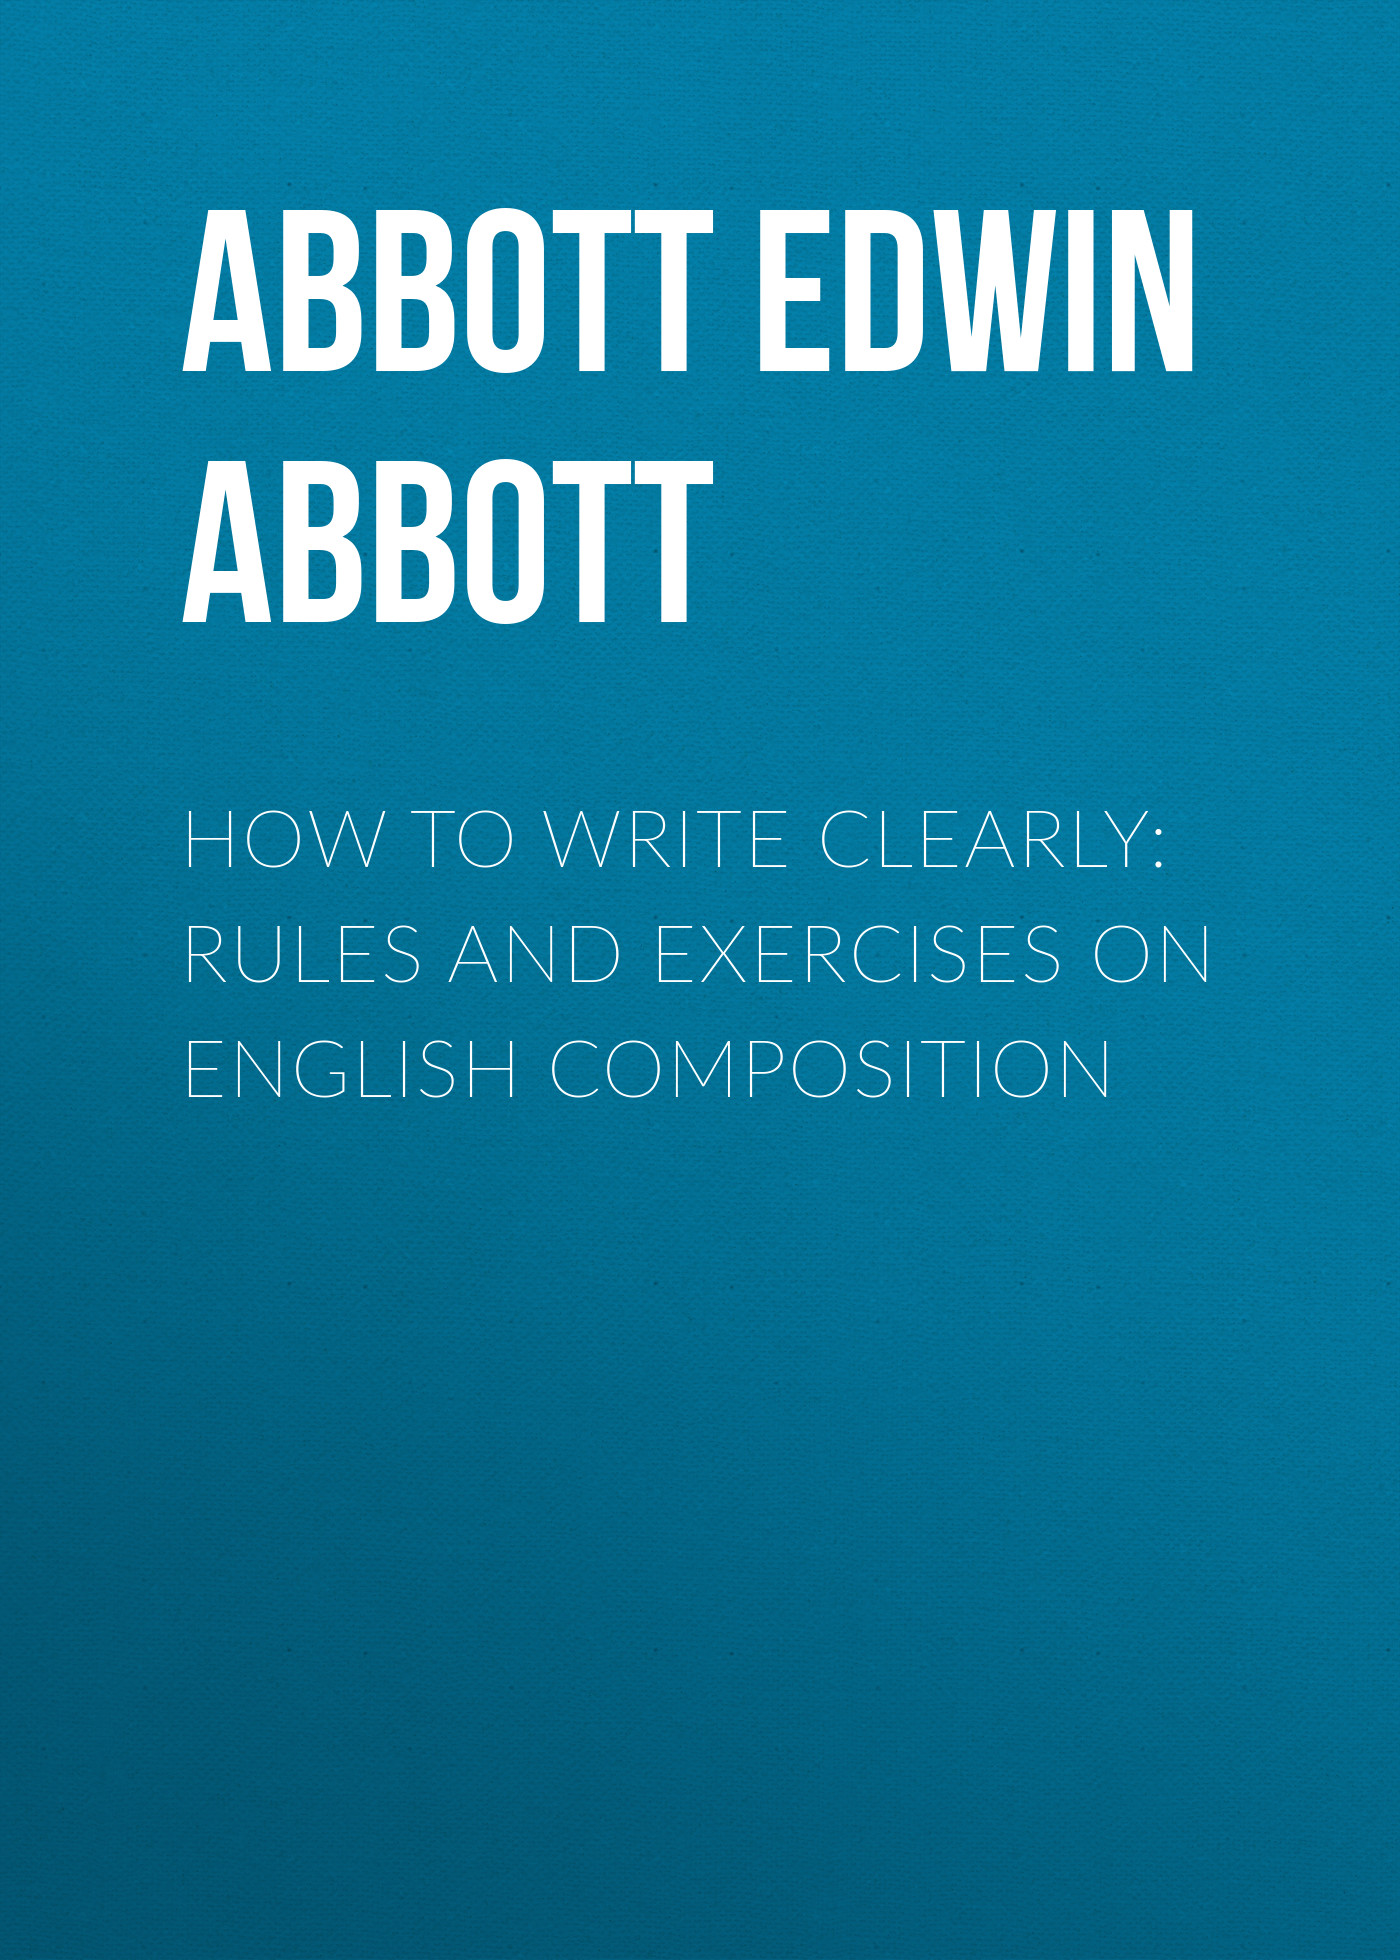 Abbott Edwin Abbott How to Write Clearly: Rules and Exercises on English Composition все цены